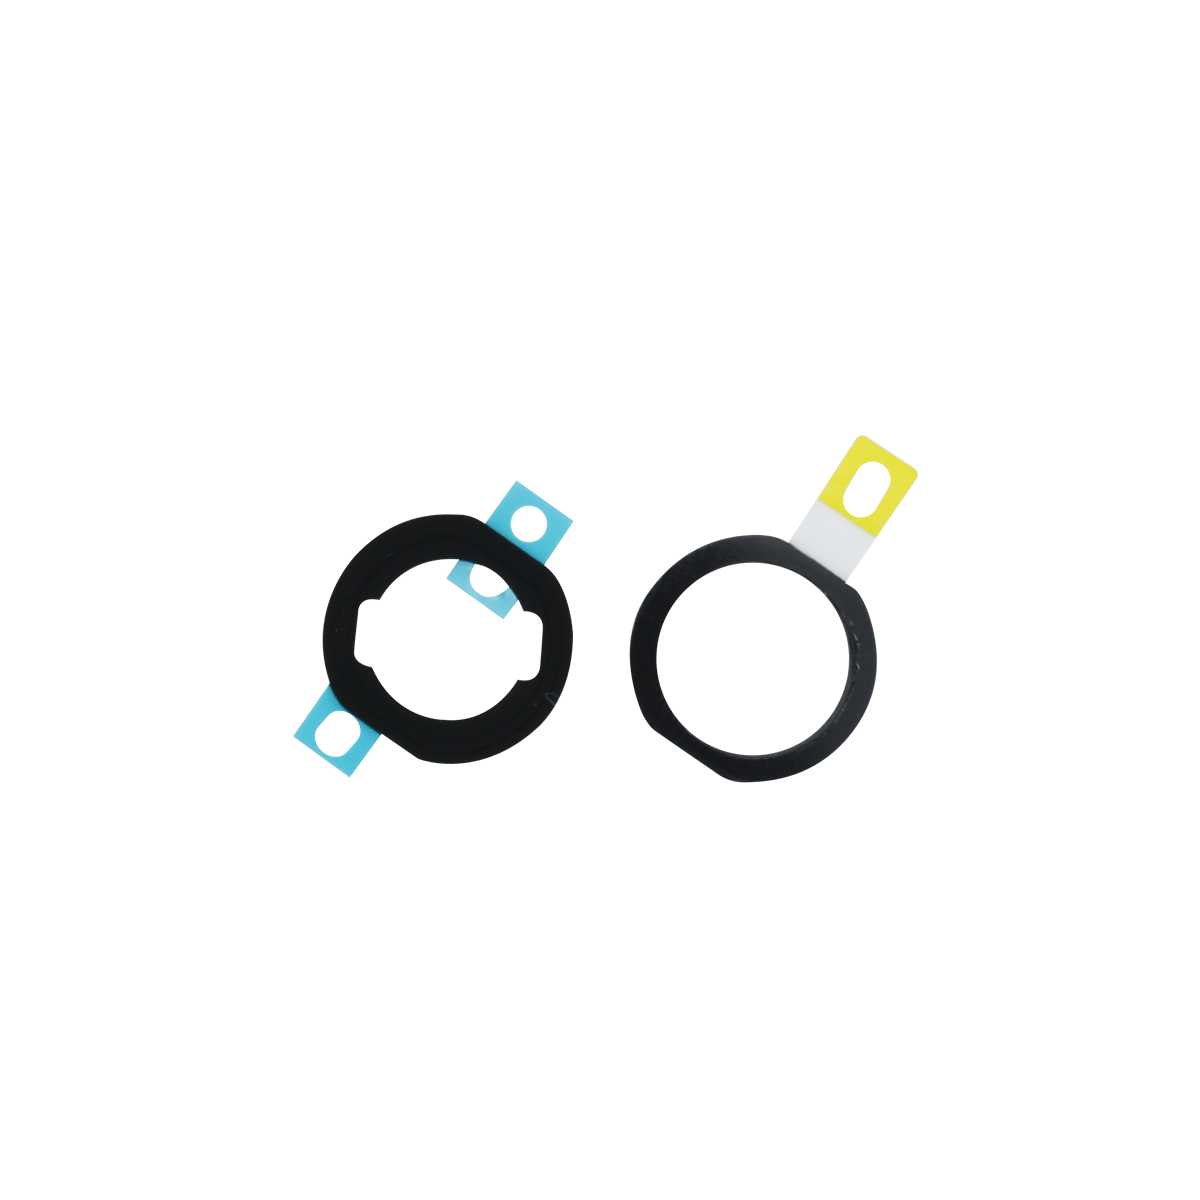 iPad Air 2 Home Button Rubber Gasket Replacement